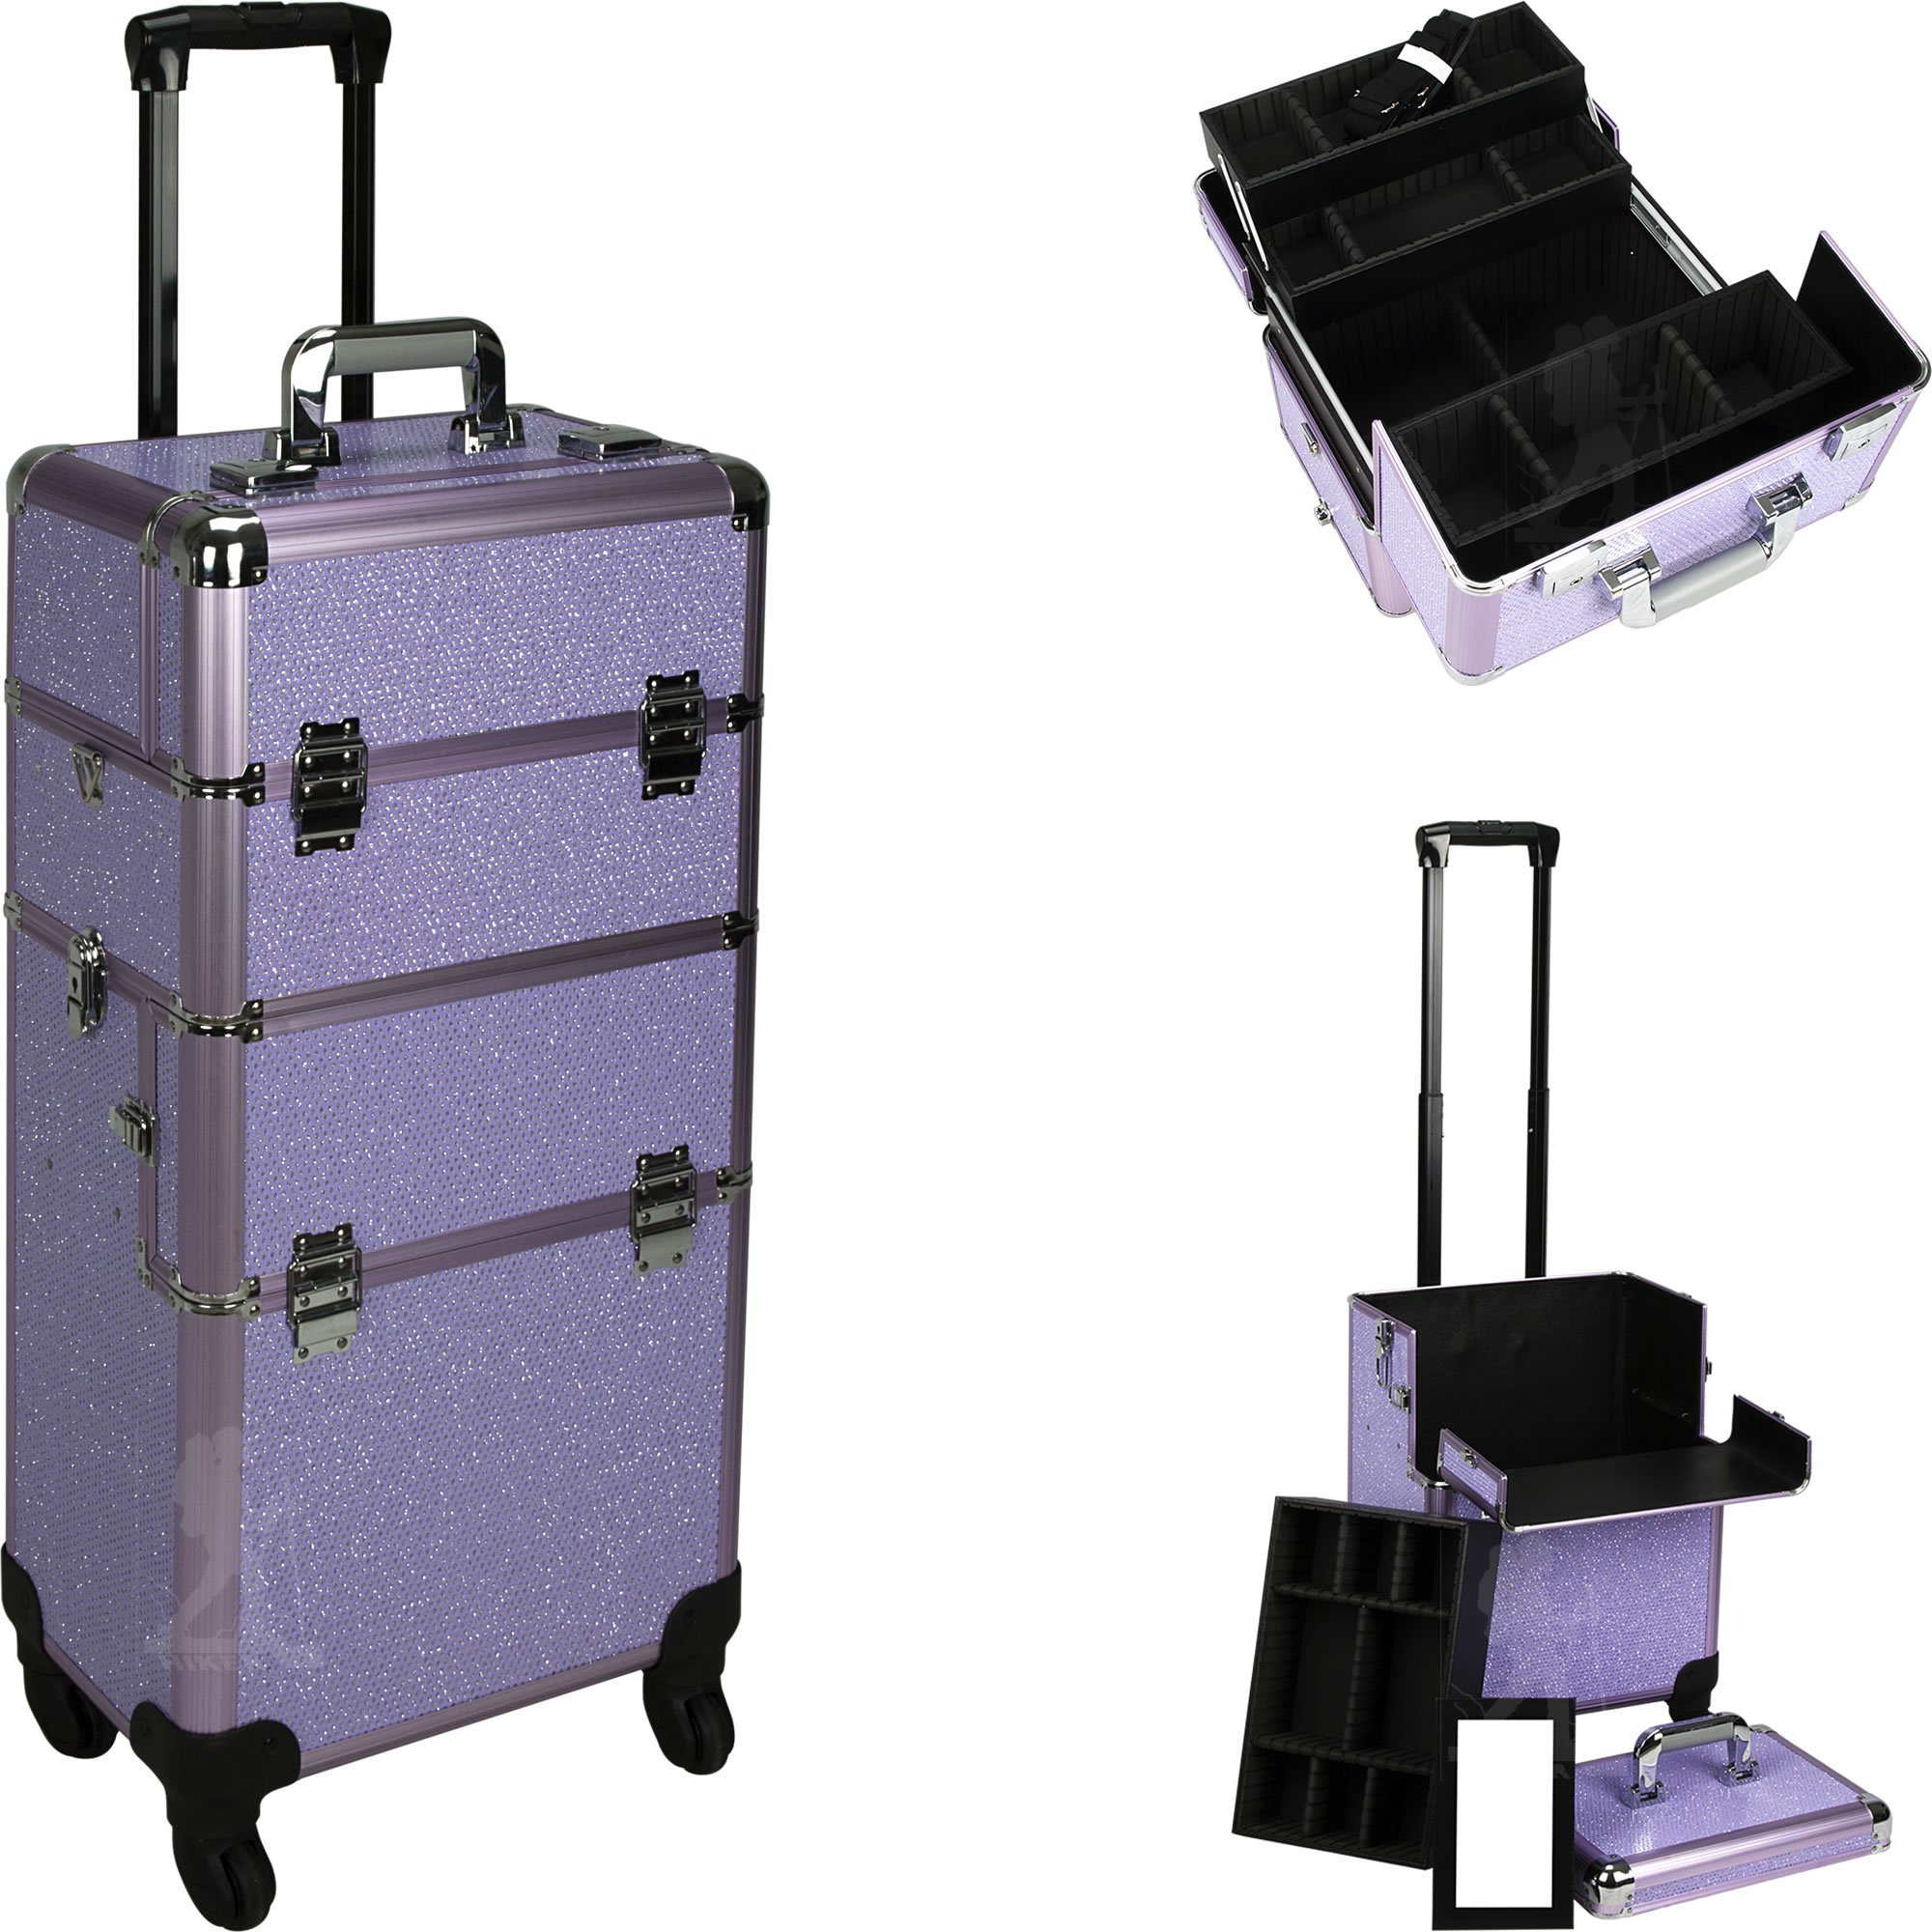 HIKER Makeup Rolling Case HK6501 2 in 1 Hair Stylist Organizer, 3 Slide and 1 Removable Tray, 4 Wheel Spinner, Locking with Mirror, Extra Lid and Shoulder Strap, Purple Krystal